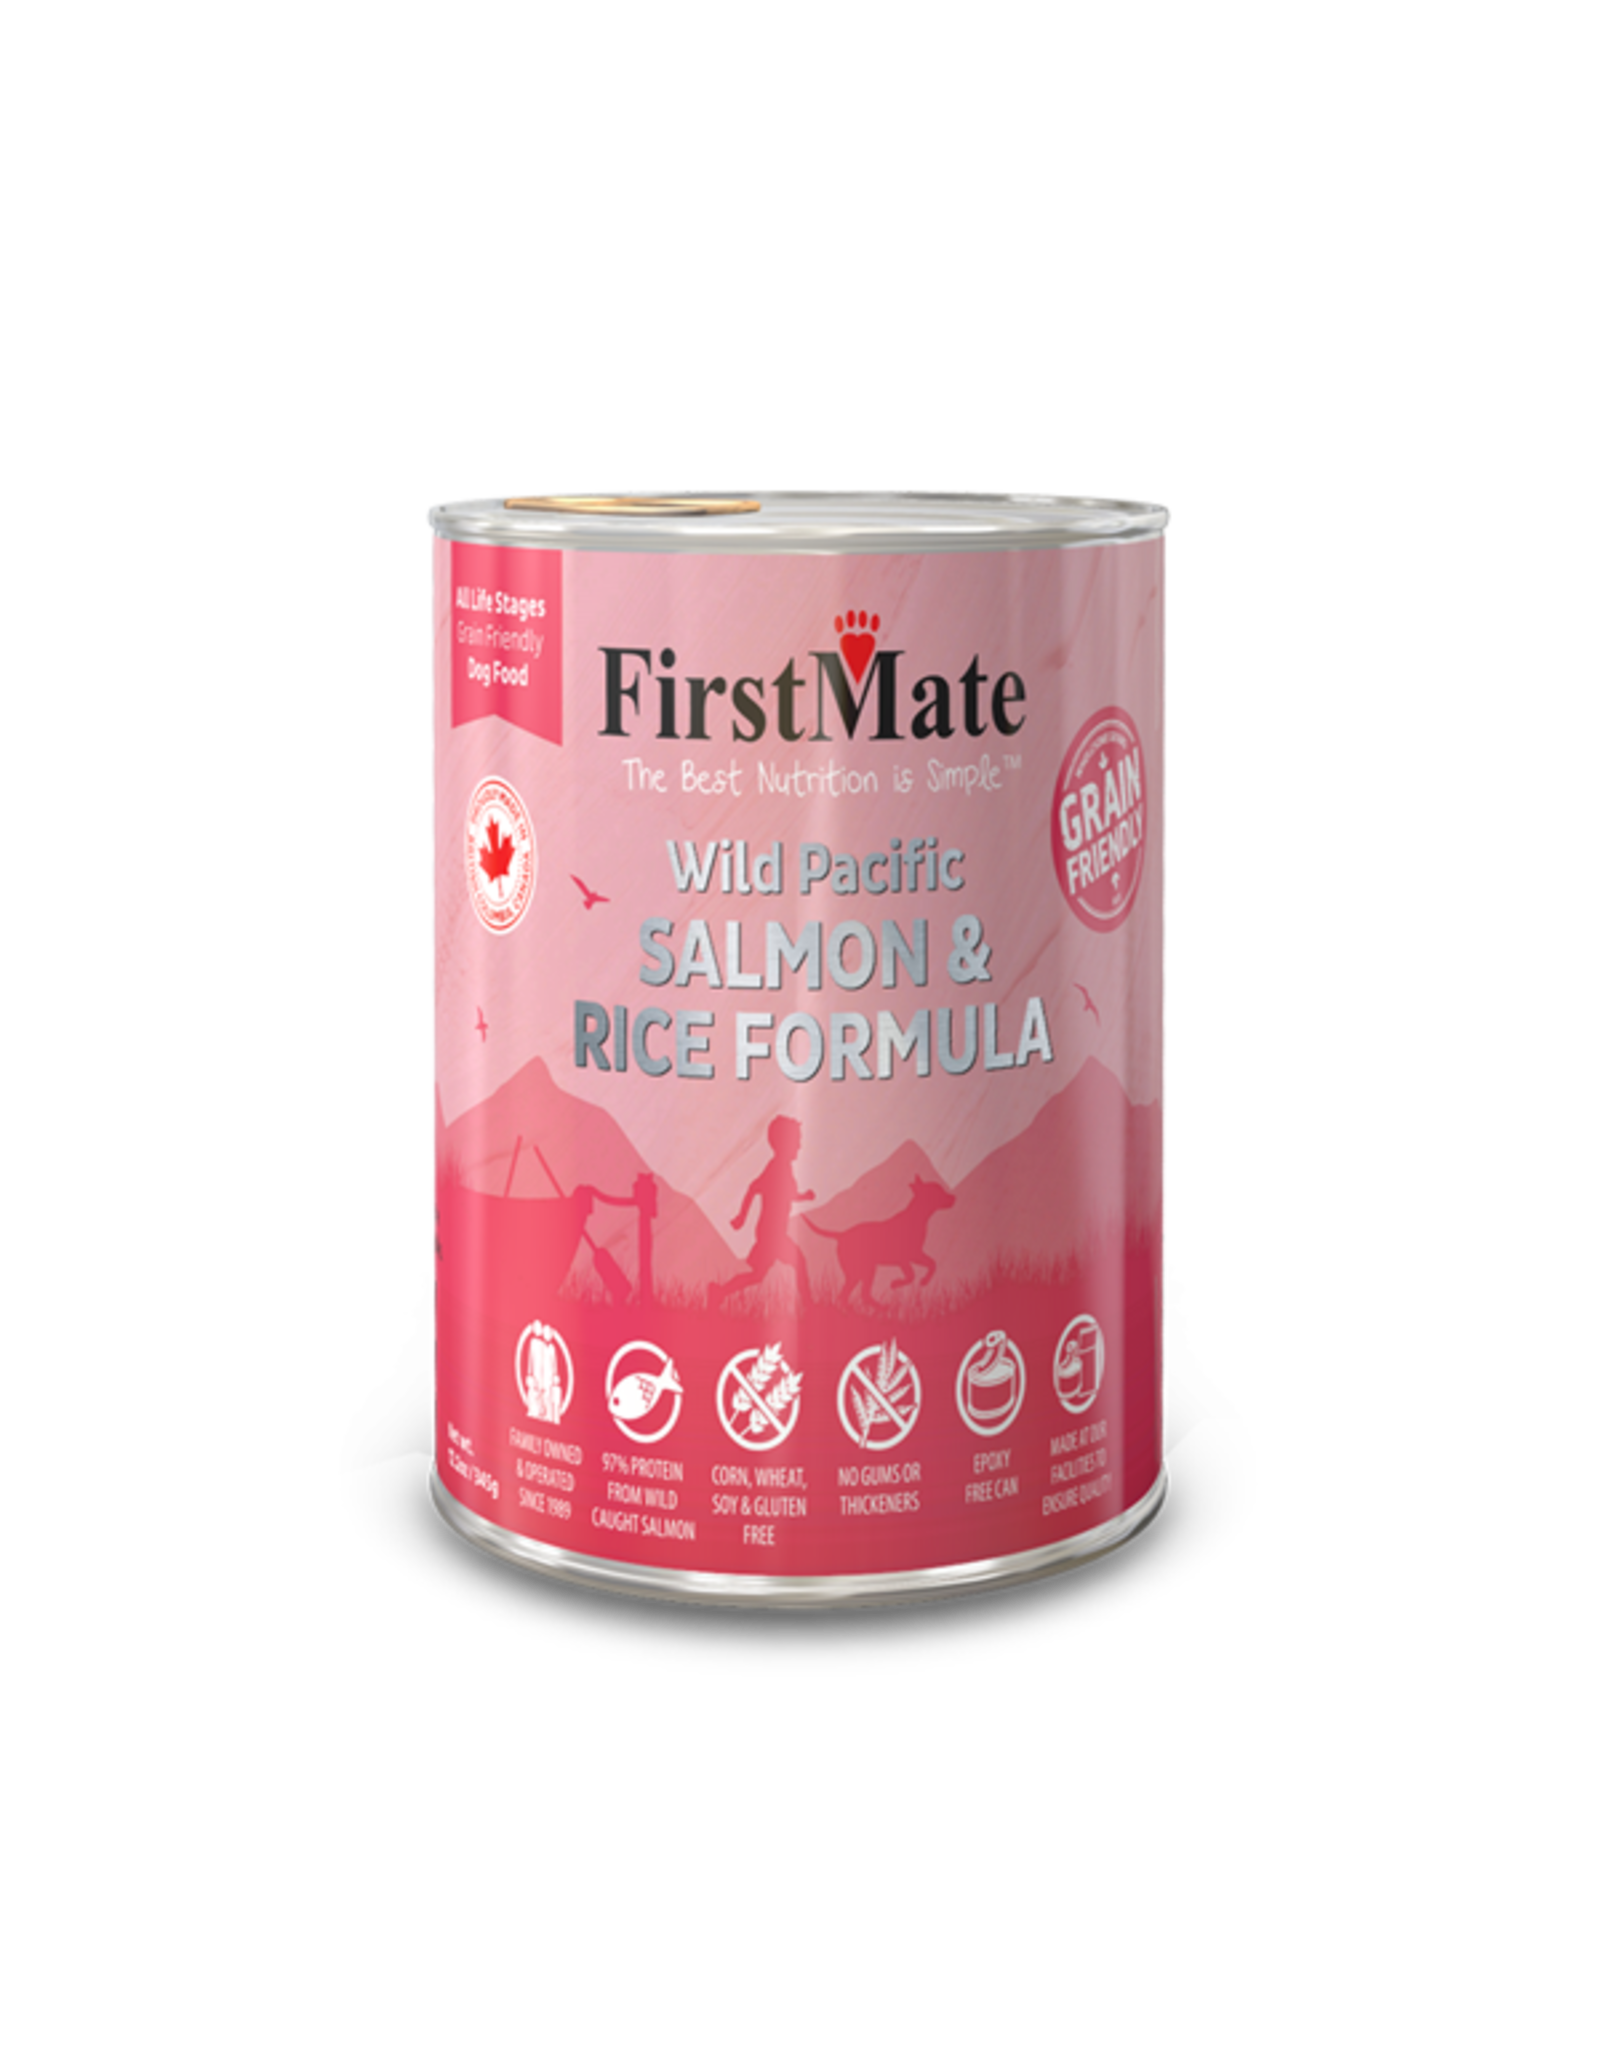 FirstMate FirstMate GrainFriendly DOG CAN Salmon w/Rice 345g